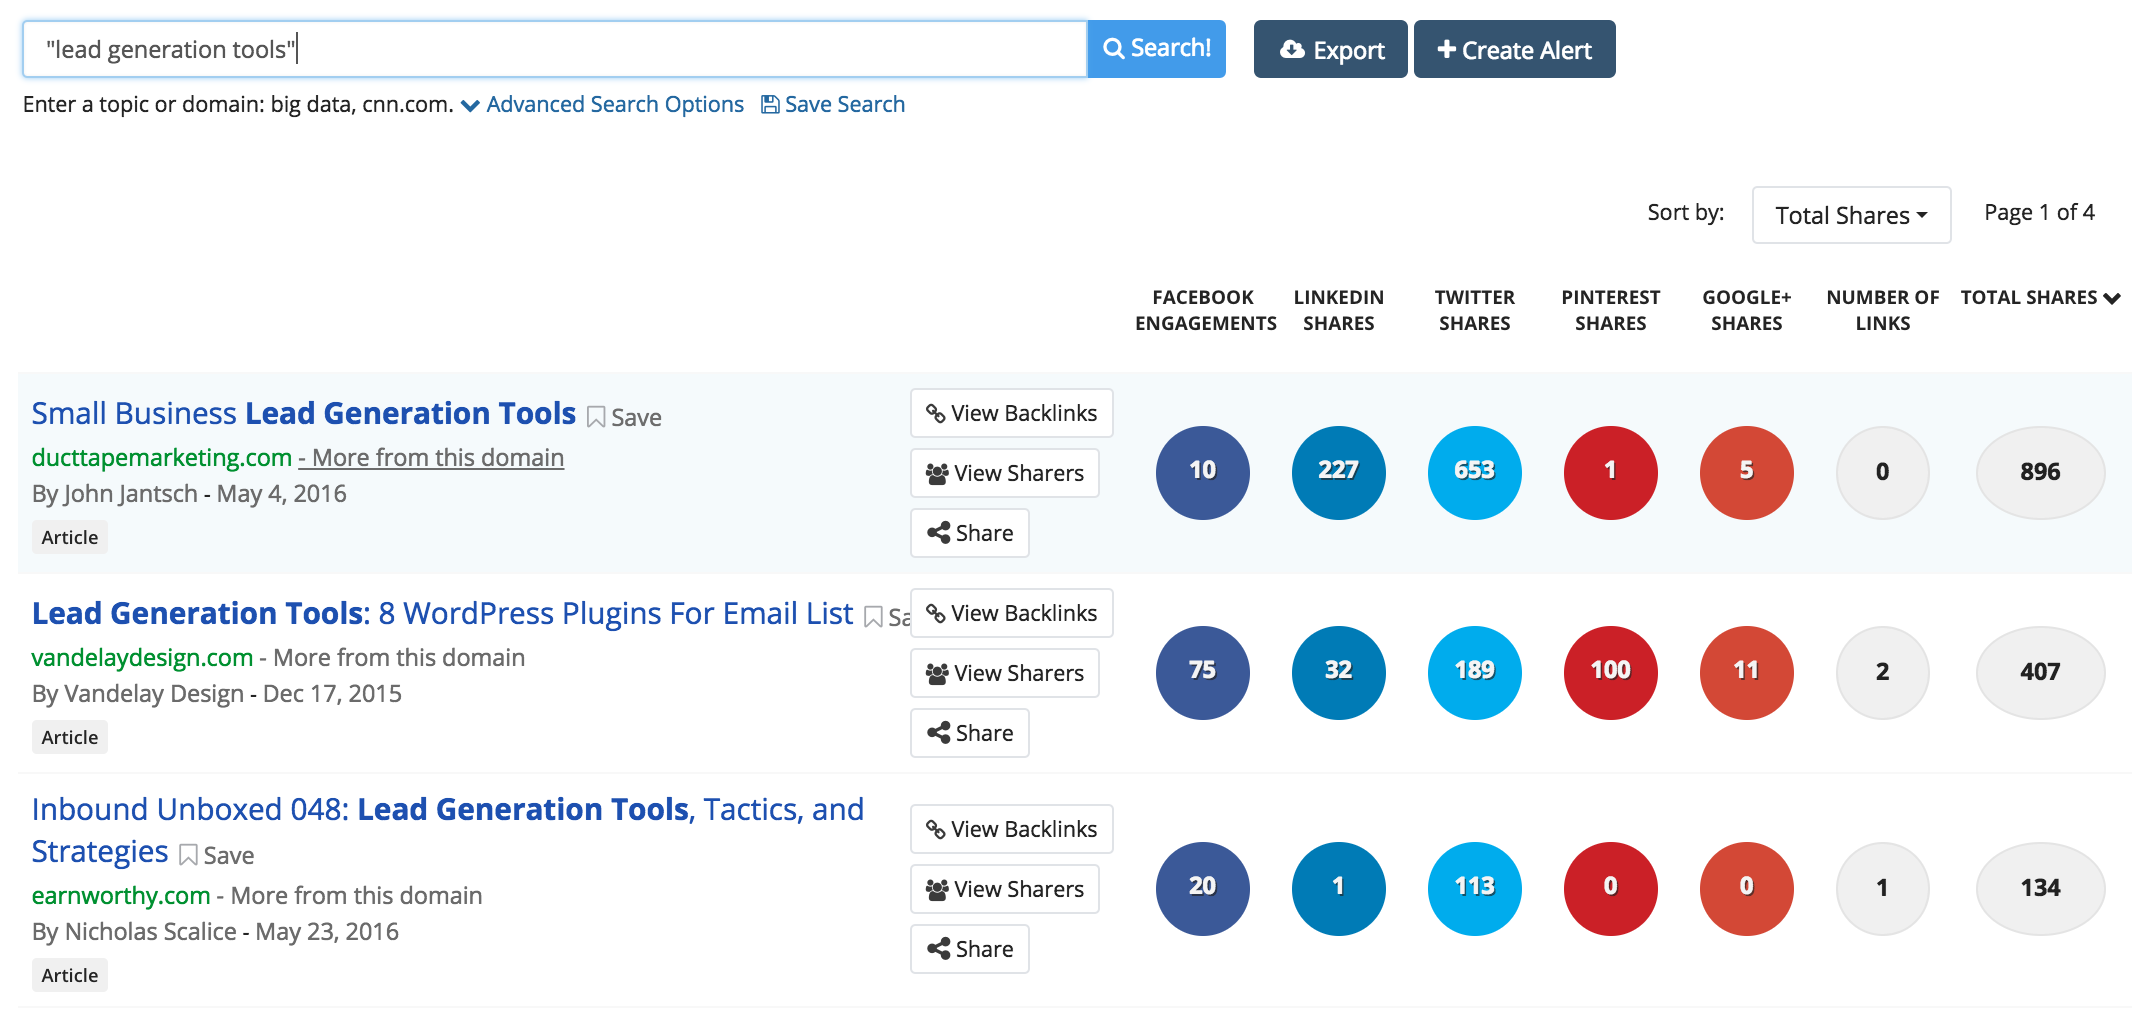 Social shares related to lead generation tools